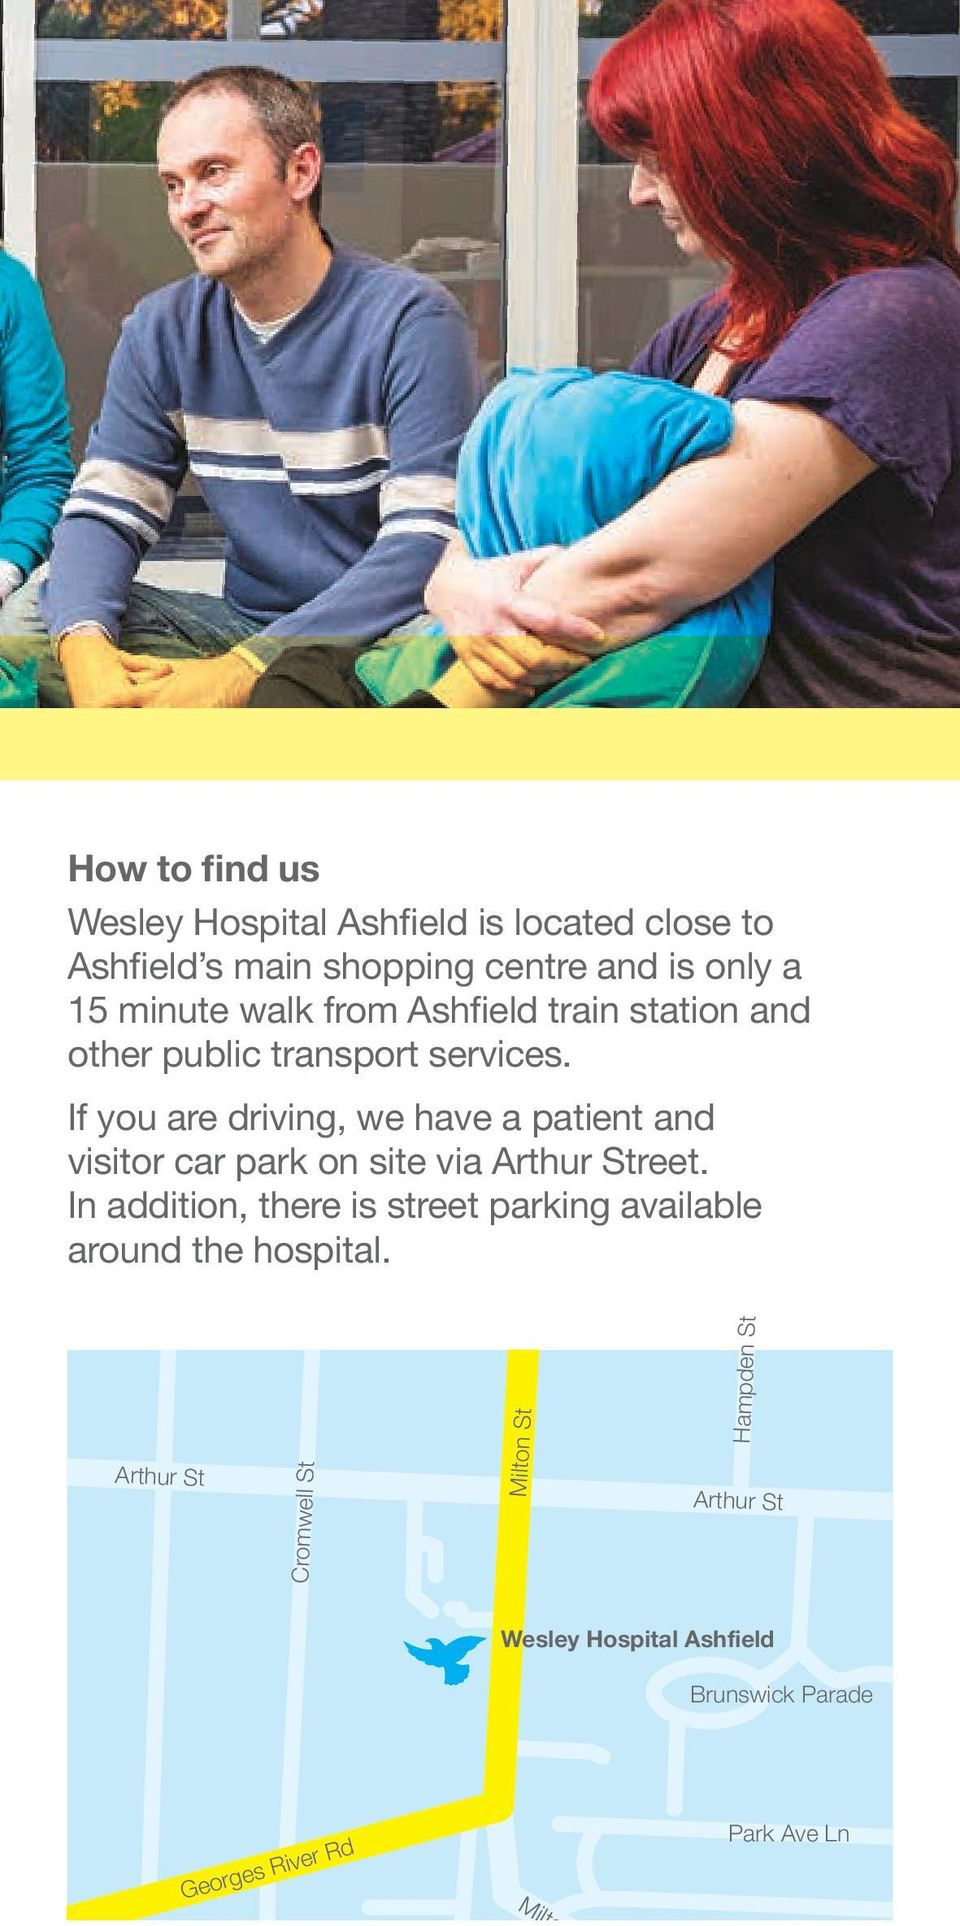 If you are driving, we have a patient and visitor car park on site via Arthur Street.